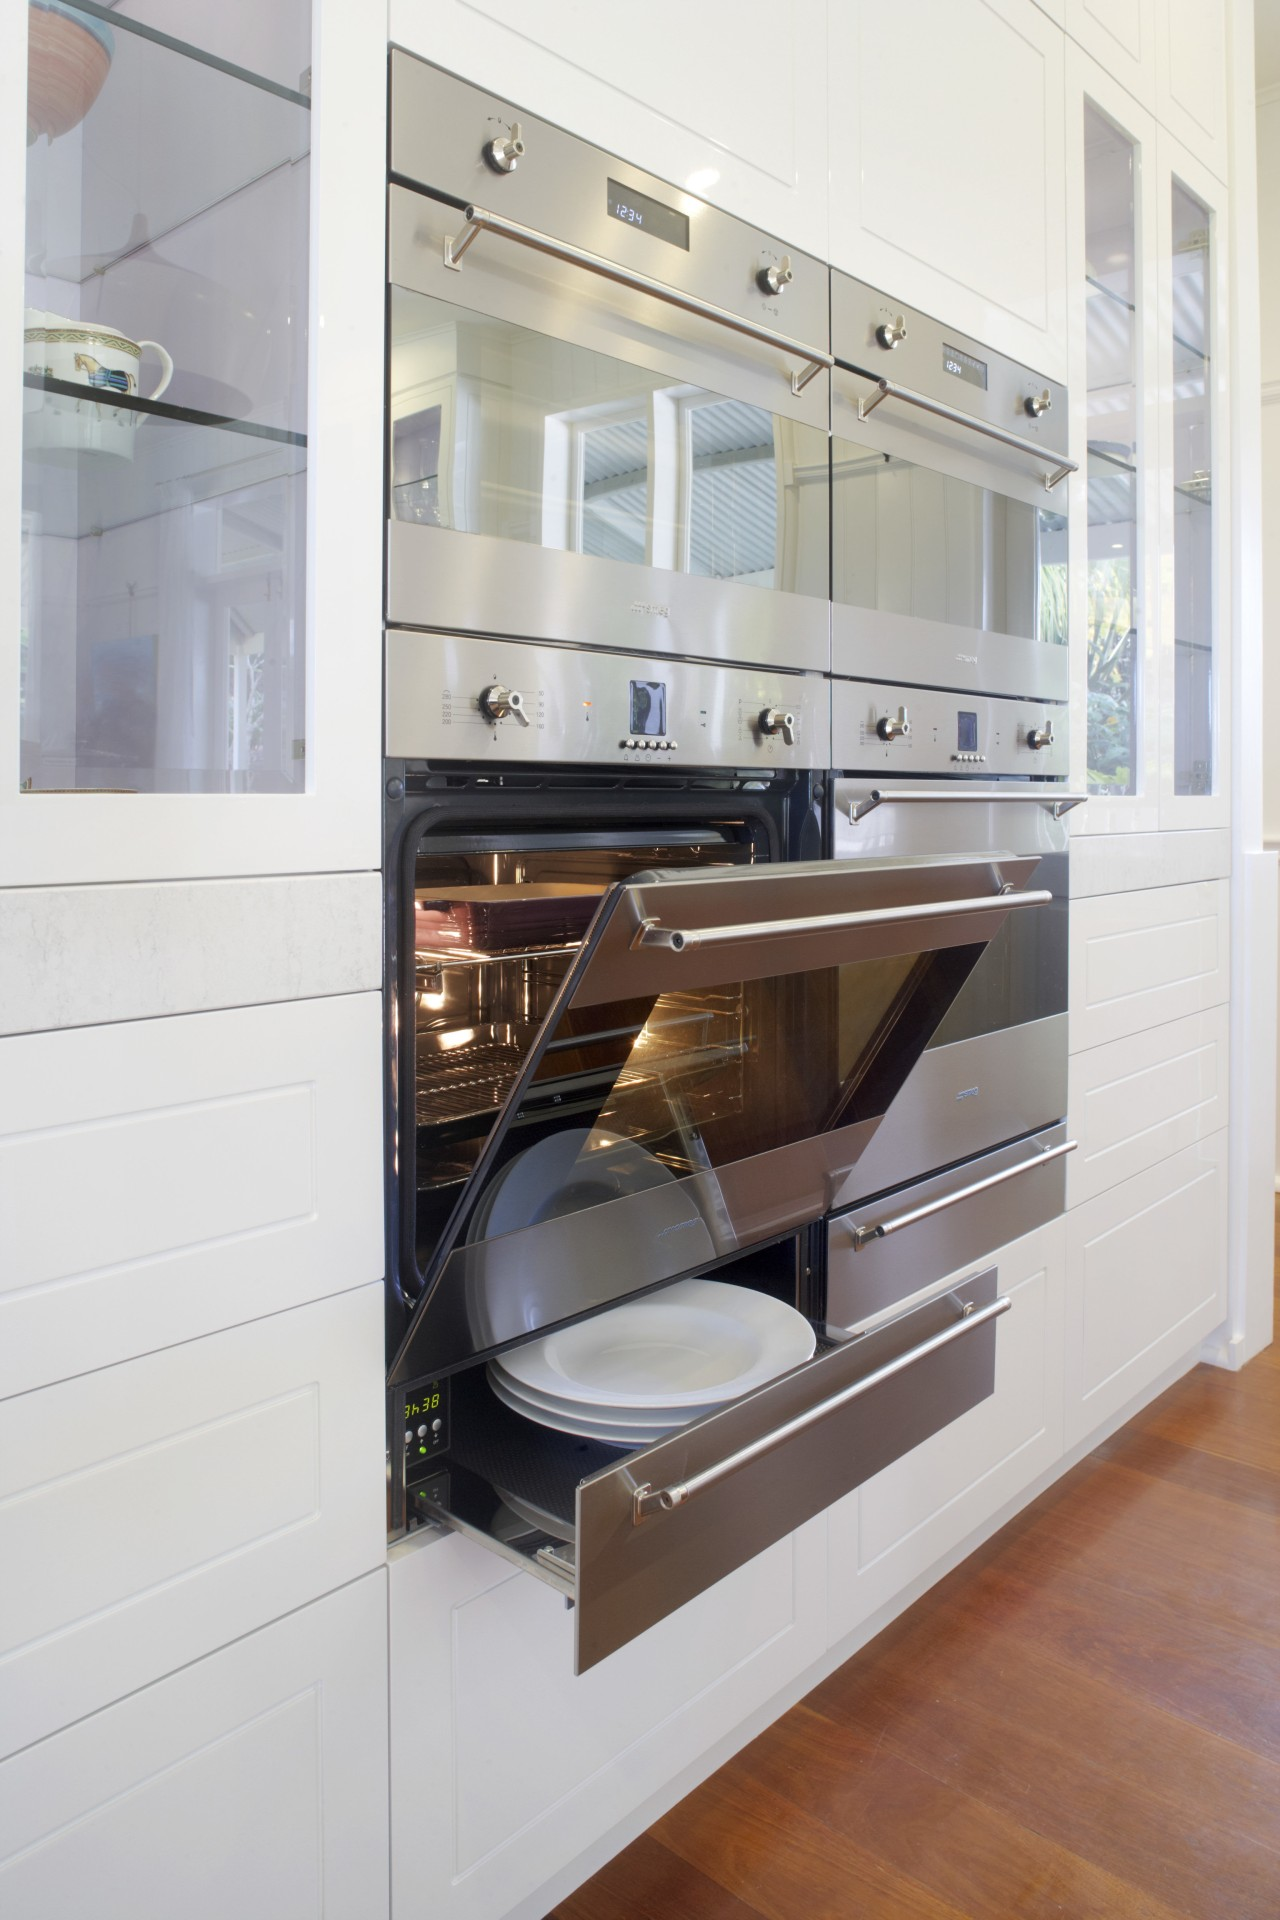 Designer Lynn Malone specified Smeg Classic ovens to countertop, cuisine classique, furniture, home appliance, interior design, kitchen, major appliance, product design, white, gray